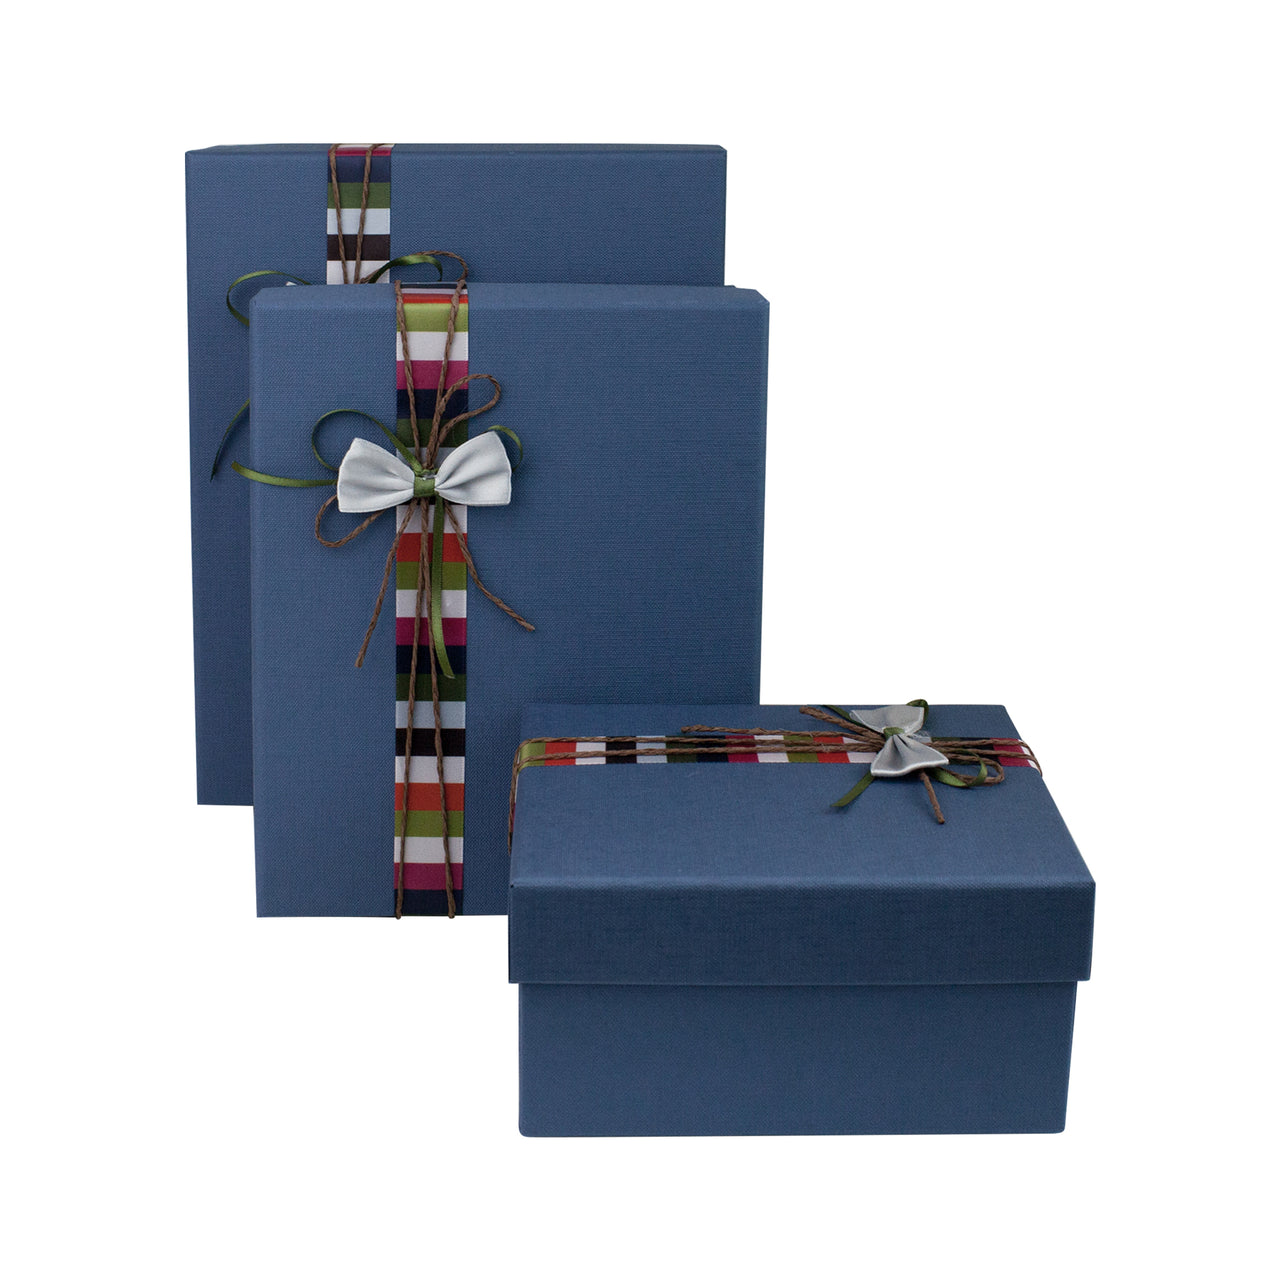 Blue Striped Bow Gift Box - Set of 3 - EMARTBUY